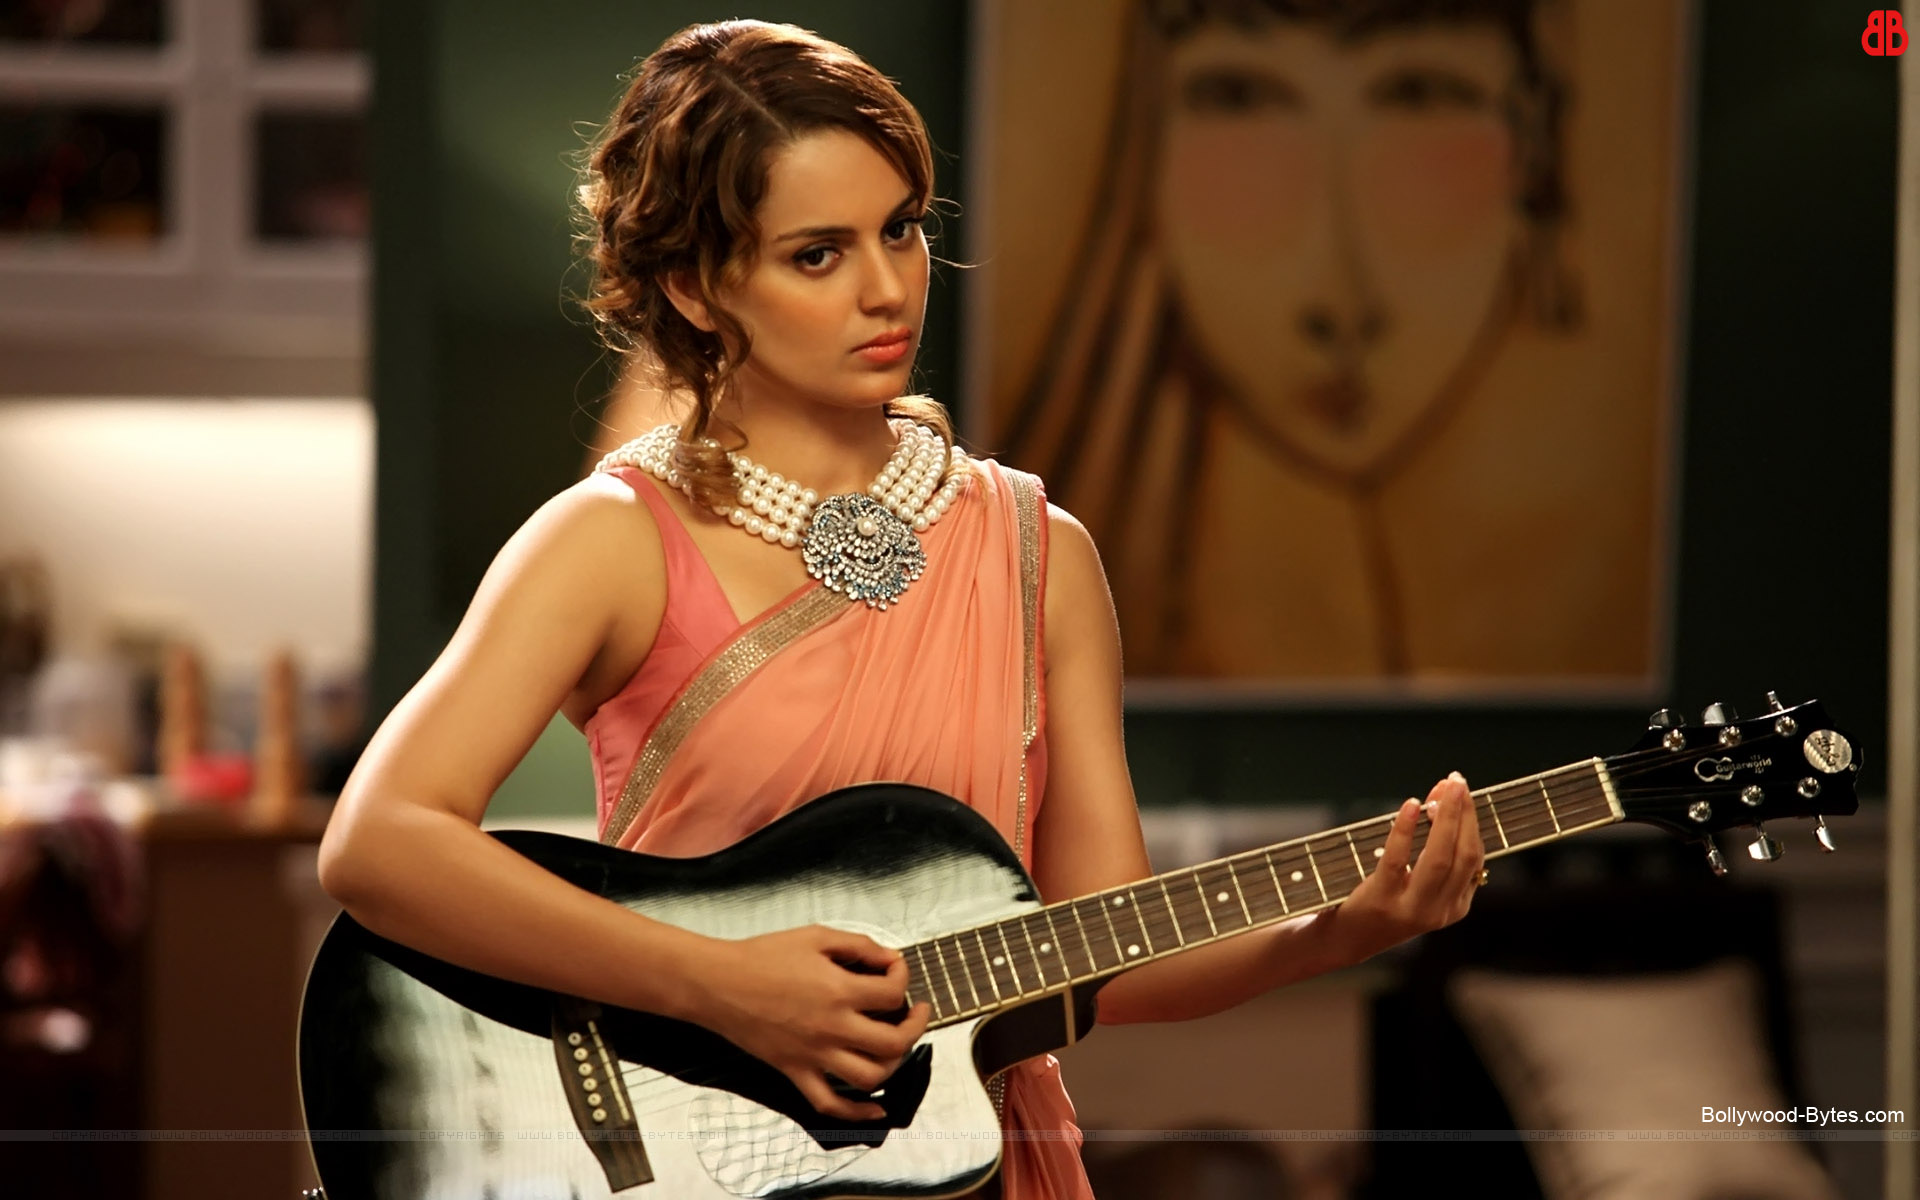 http://4.bp.blogspot.com/-mMERkTKS7rM/US8bRI0h02I/AAAAAAAAcGw/kNDd2ivq5rc/s1920/I-Love-New-Year+-Hot-Kangna-Ranaut-HD-Wallpaper-07.jpg